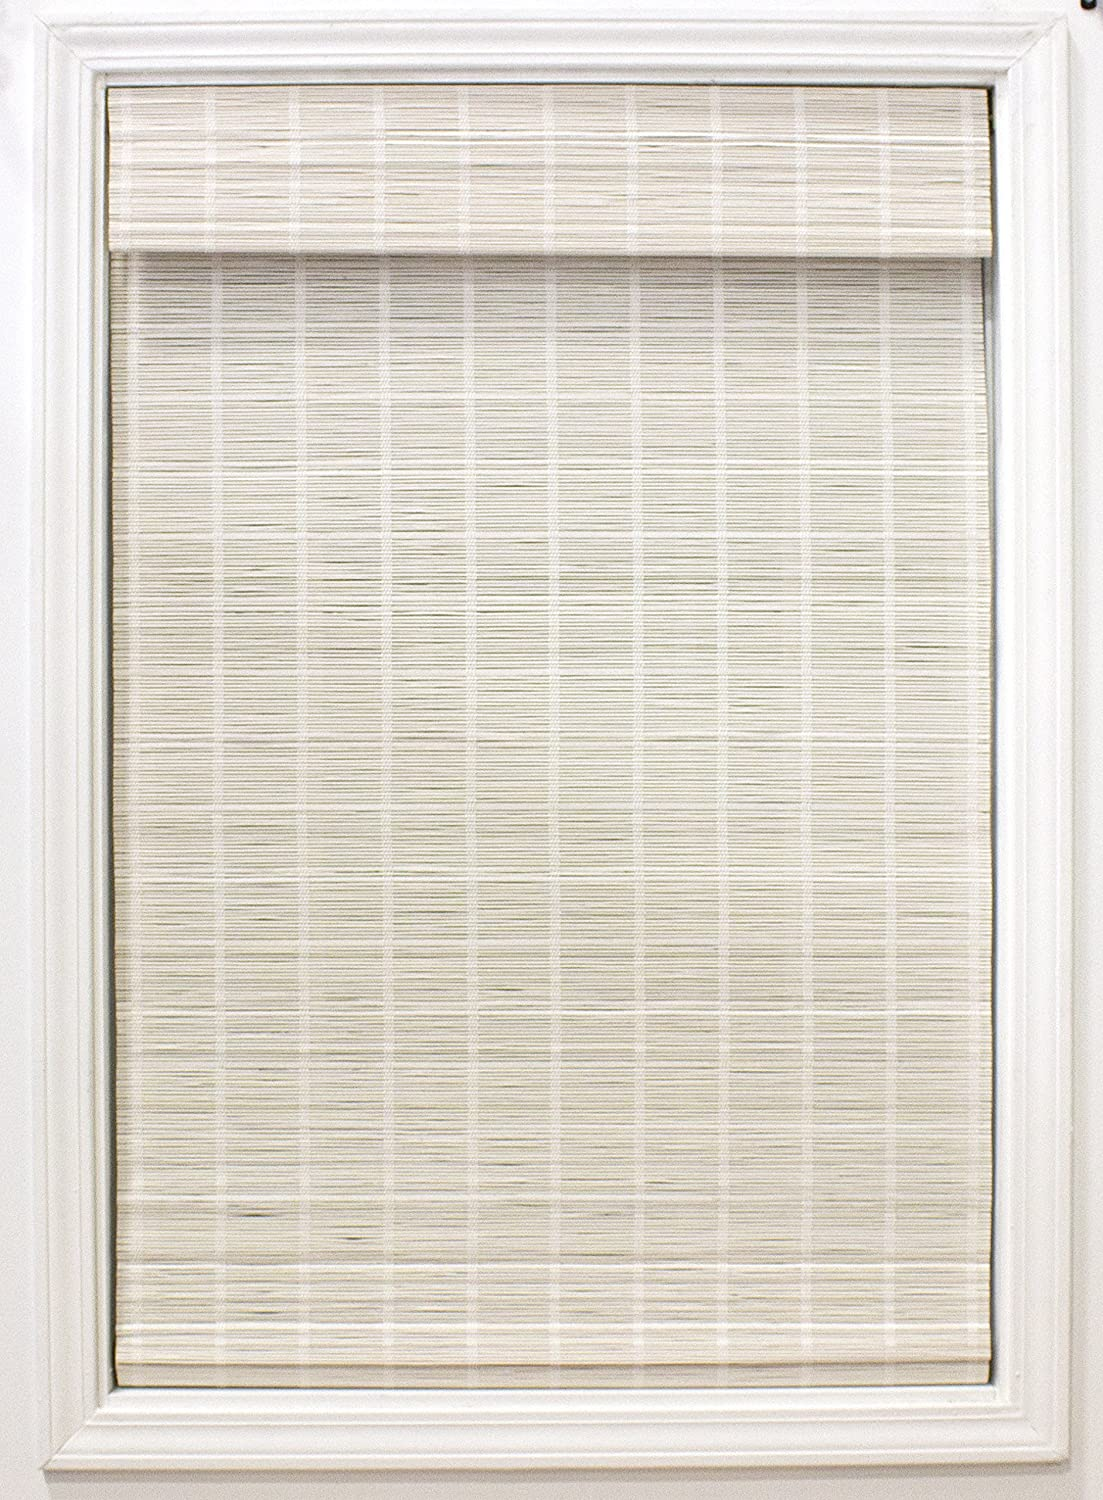 RADIANCE Cordless White Bayshore Bamboo Blinds, 12